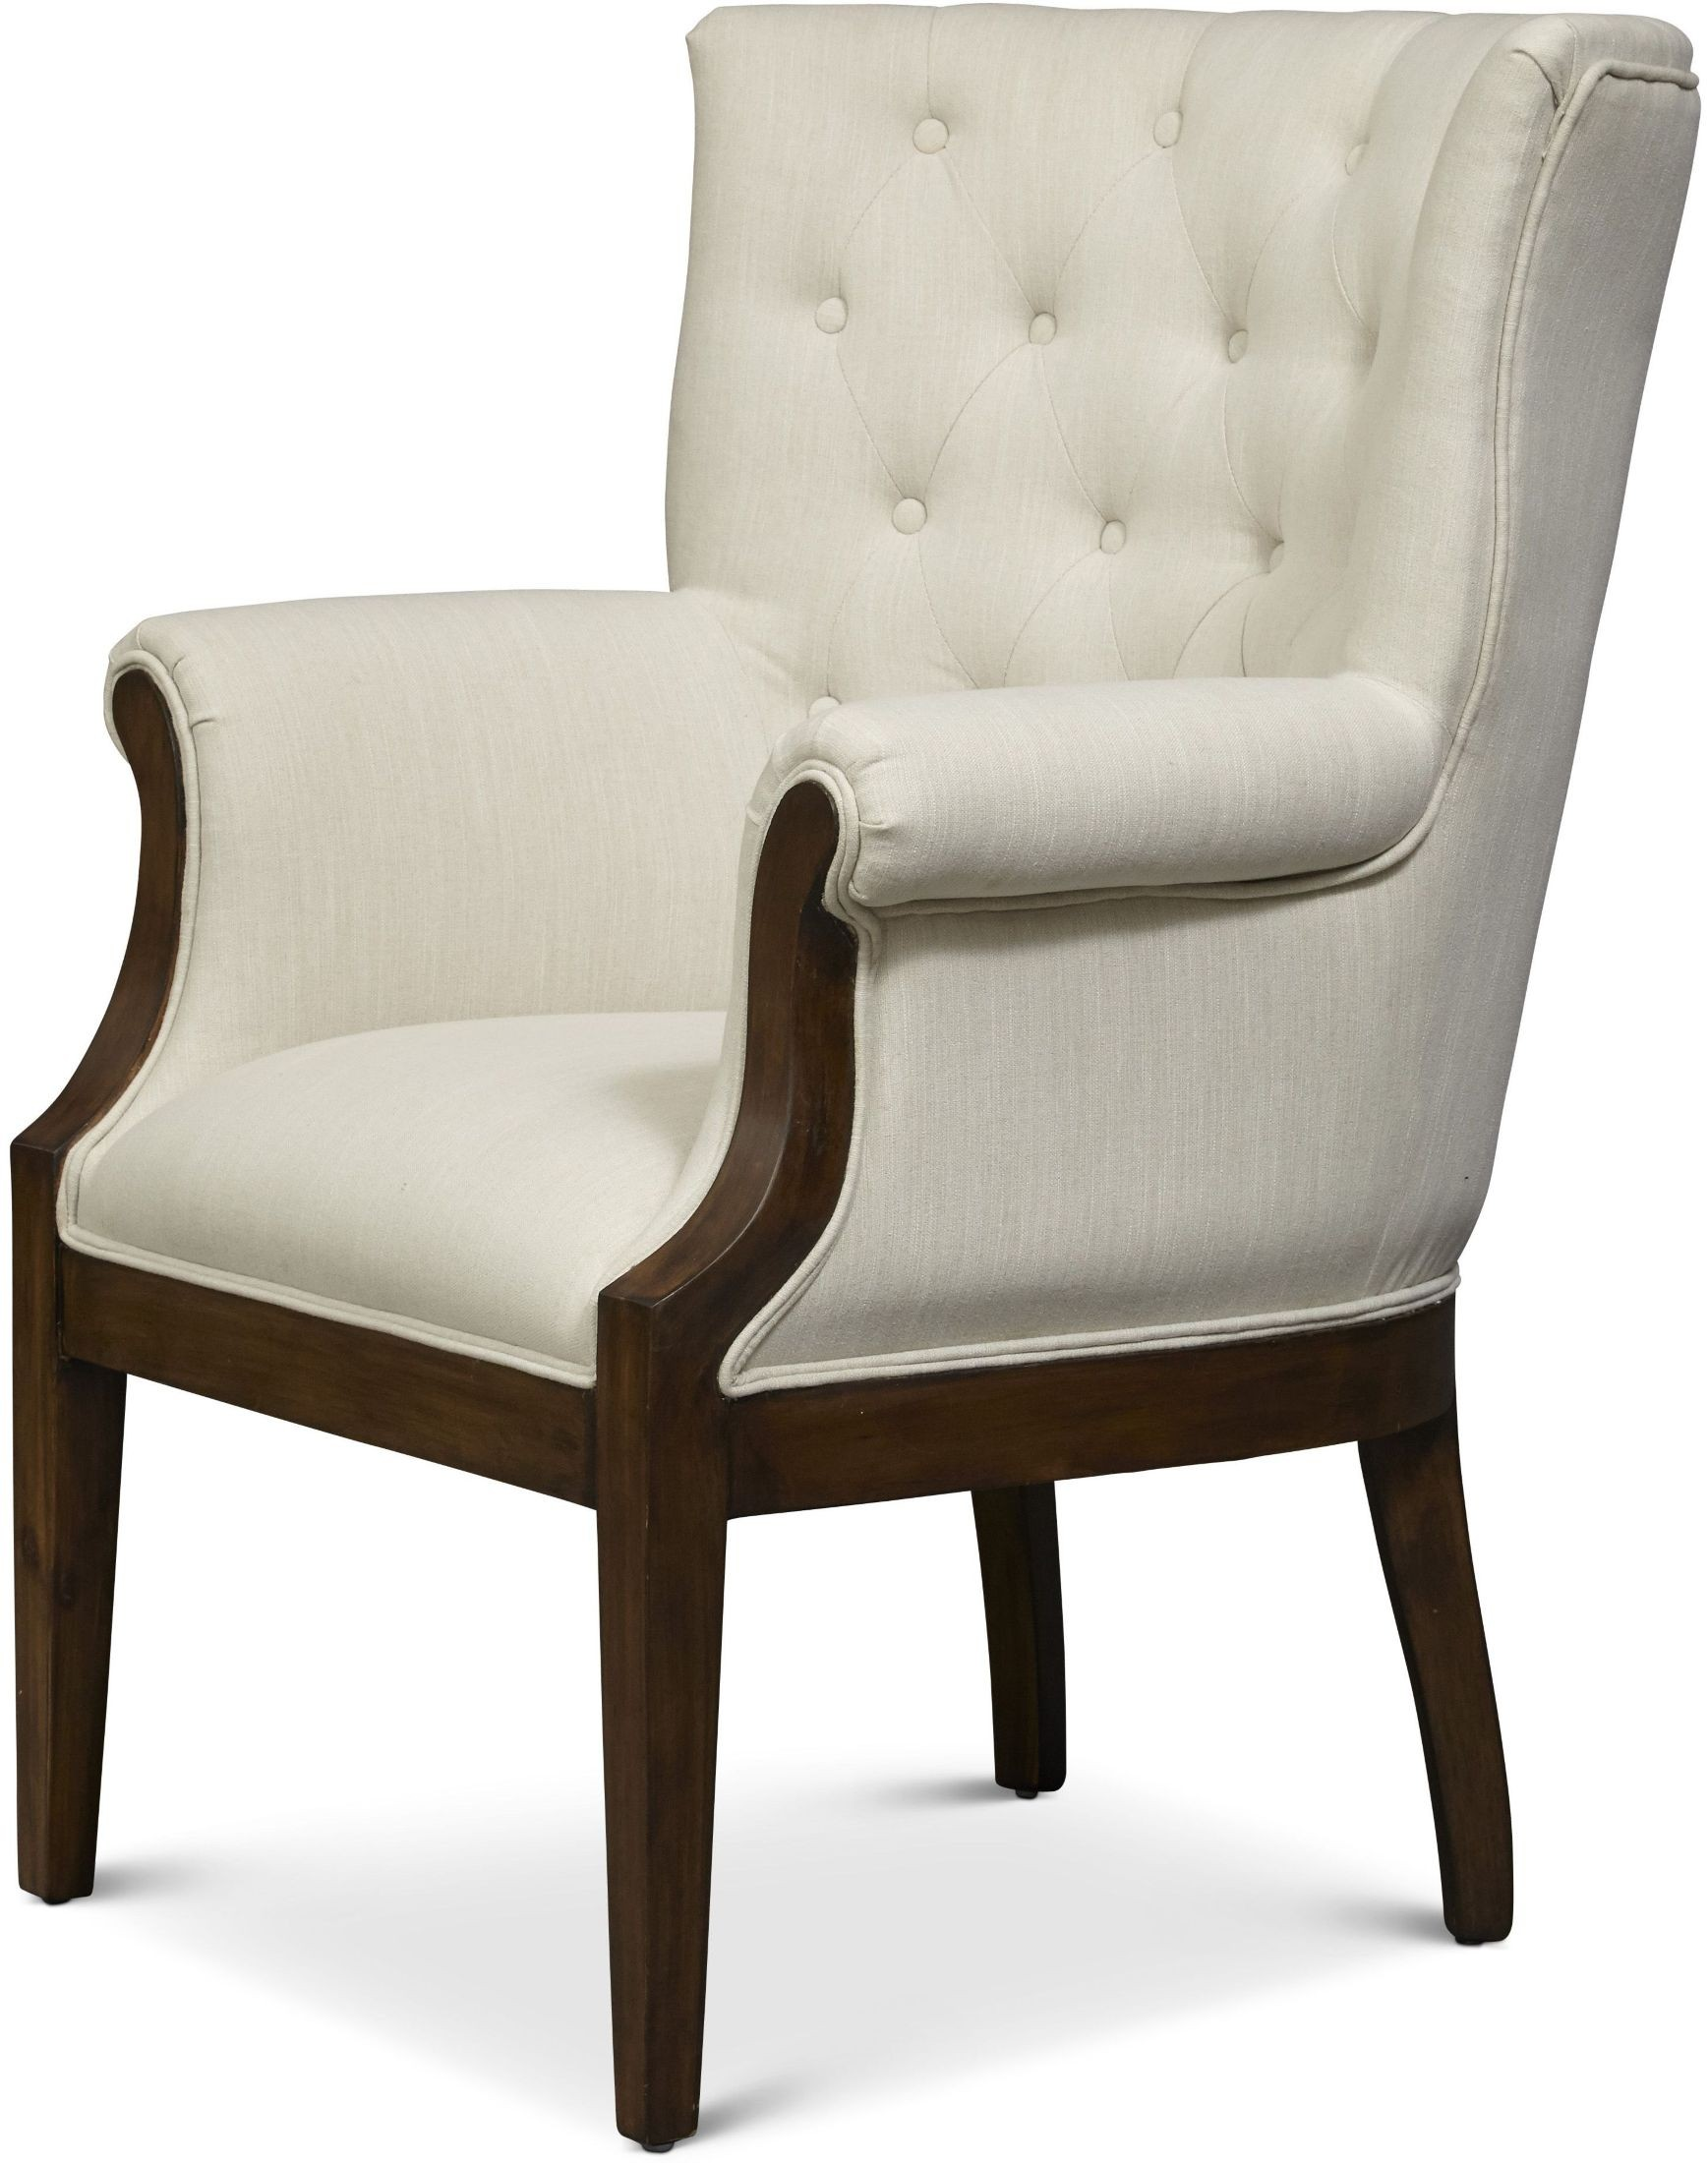 Paxton Walnut Cream Accent Chair from Jofran  Coleman